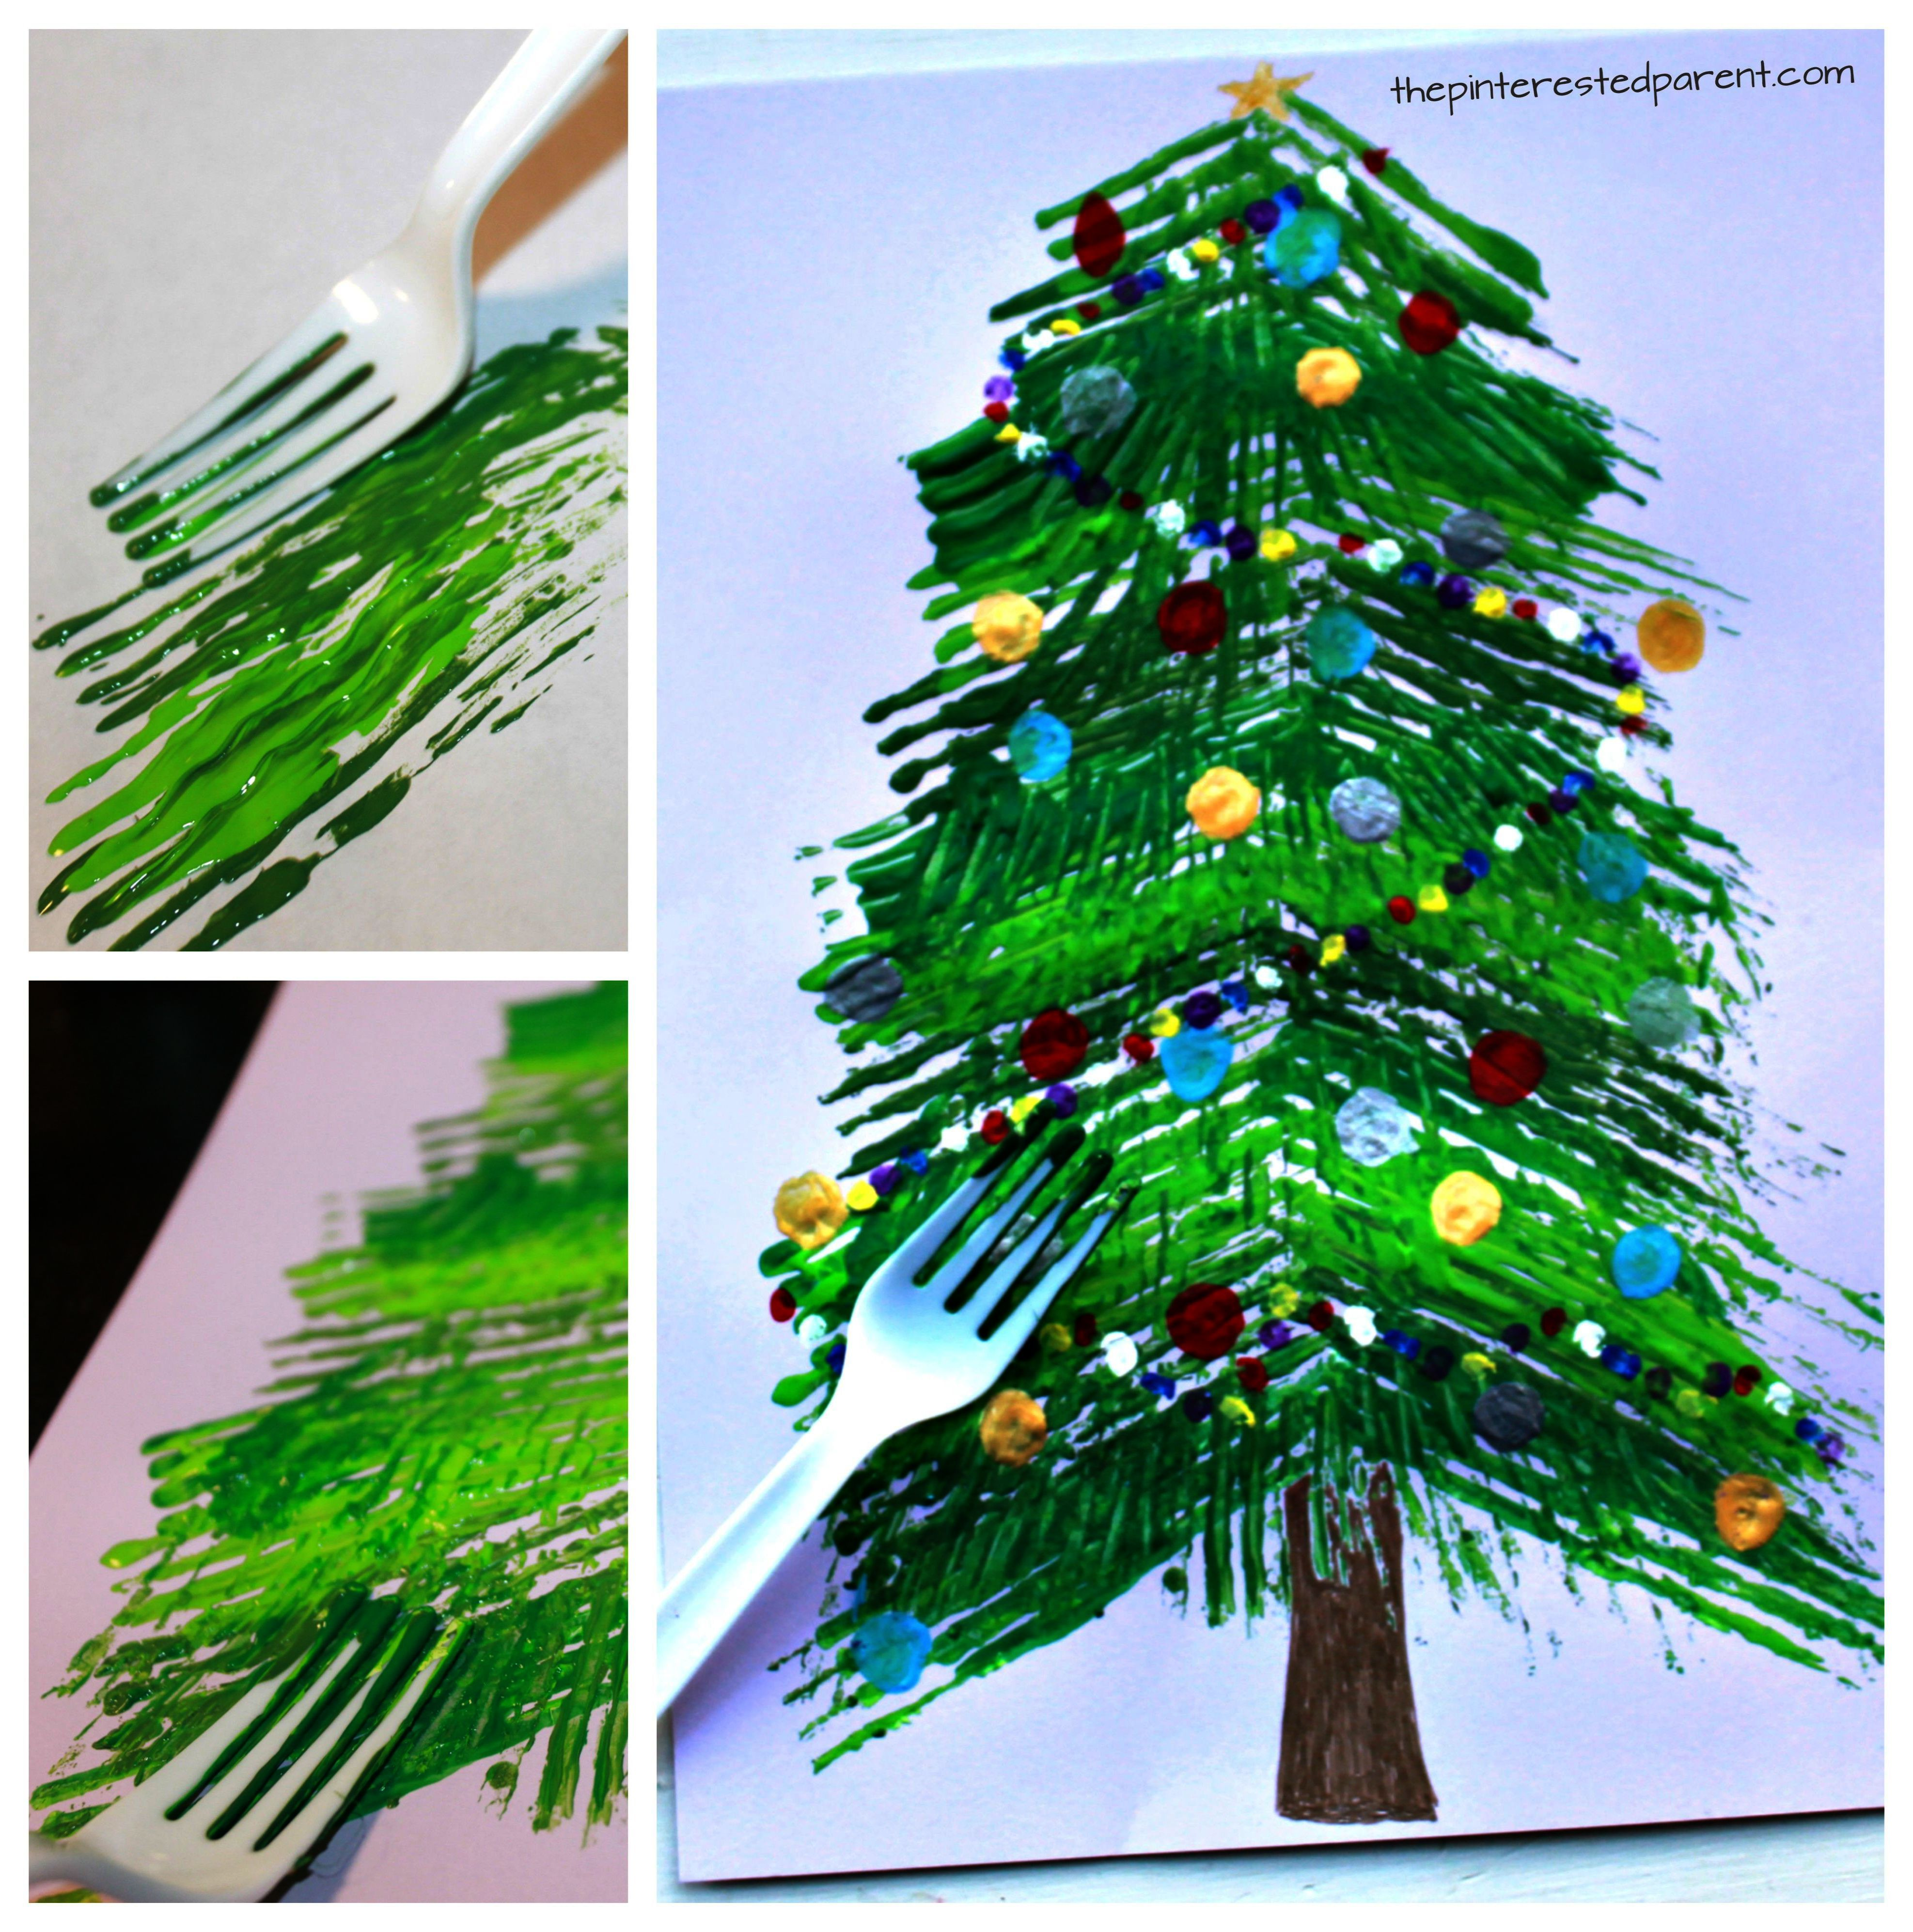 Bauble Foam Stickers for Children to Decorate Christmas